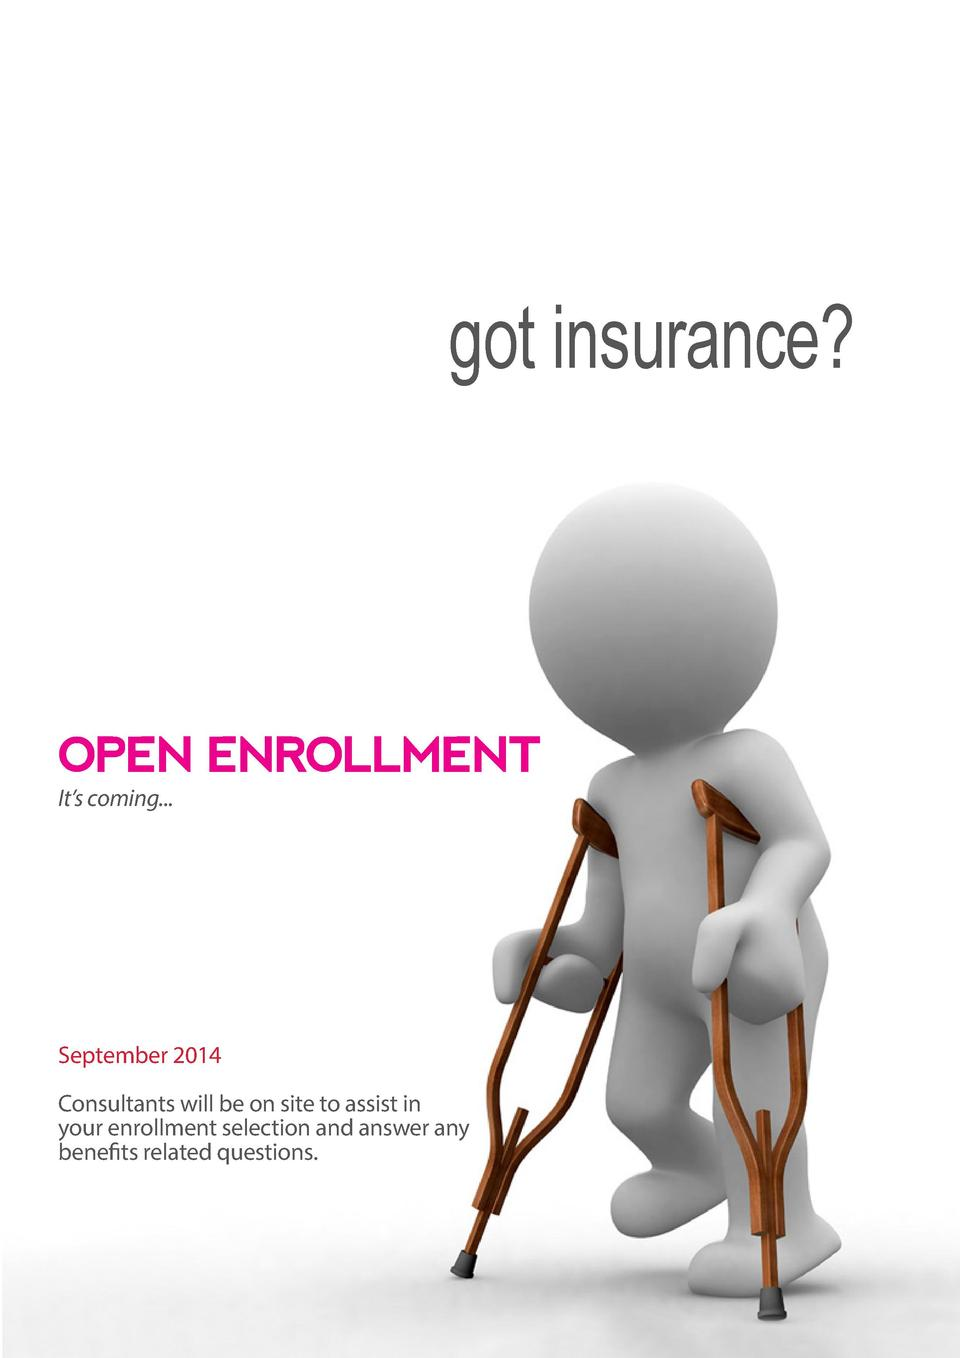 got insurance   OPEN ENROLLMENT It   s coming...  September 2014 Consultants will be on site to assist in your enrollment ...